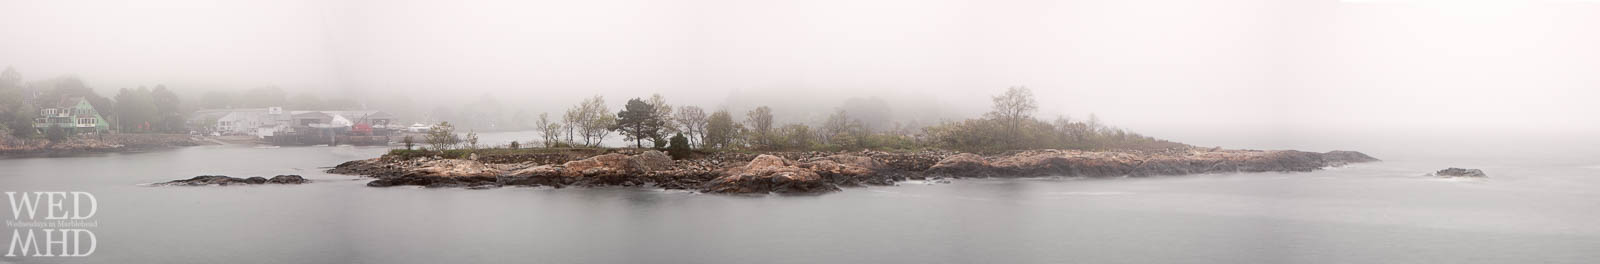 Island in the Fog